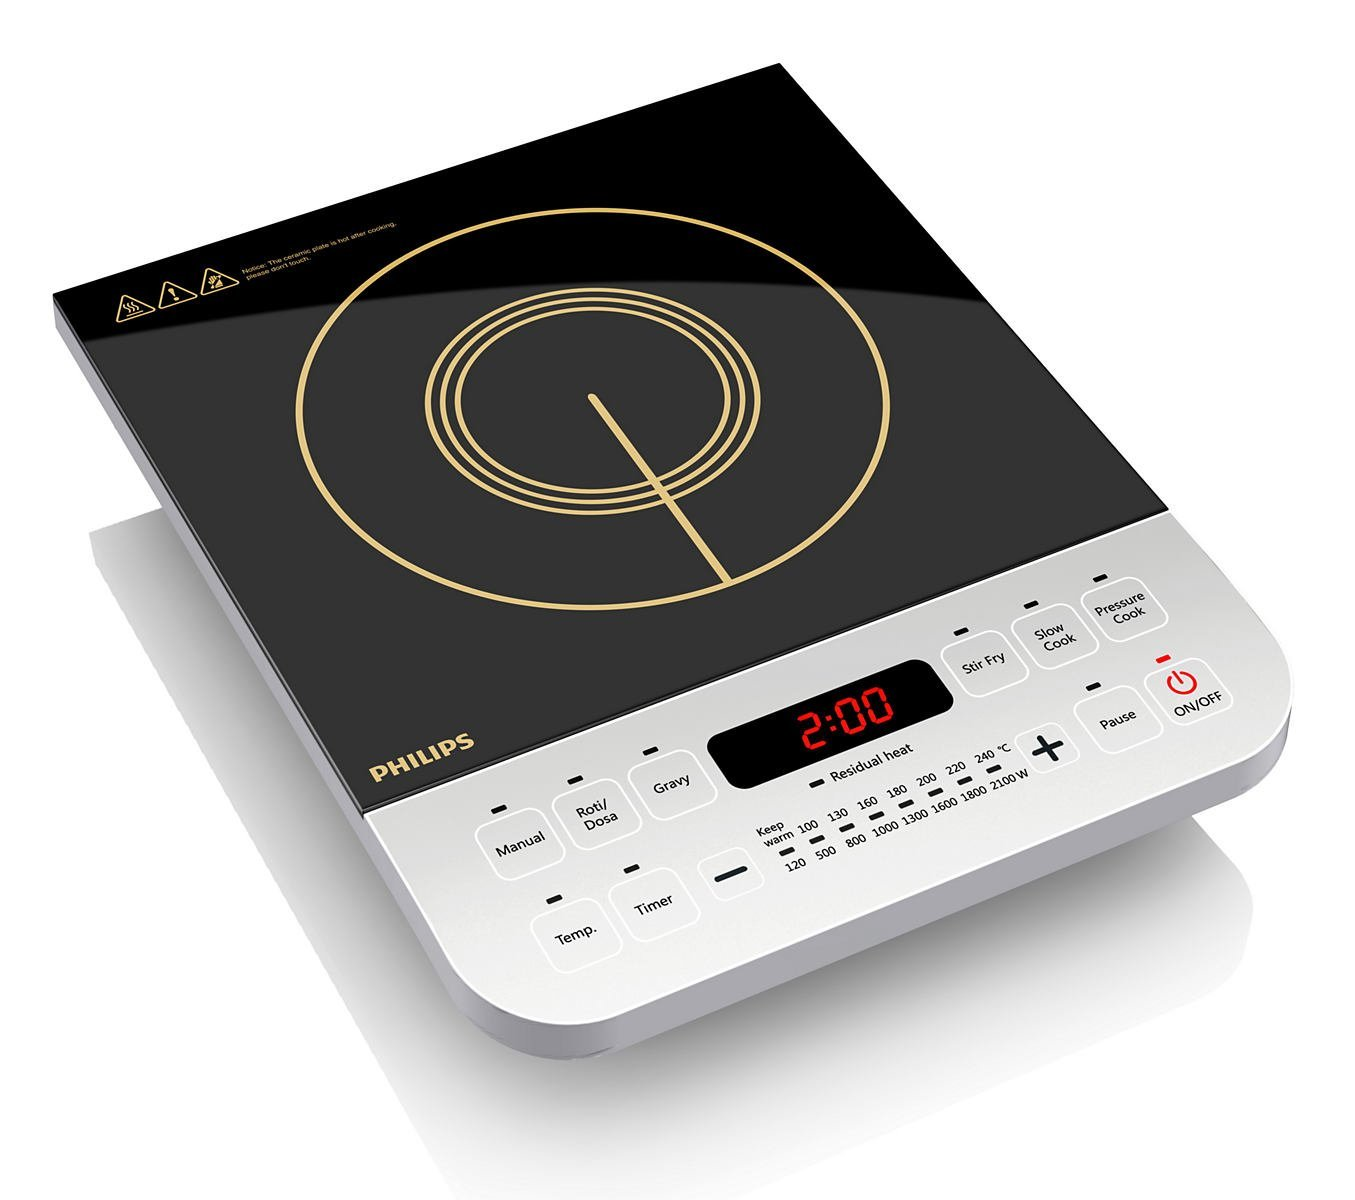 Philips Viva Collection 2100-Watt Induction Cooktop  for Rs 2299 (51% off)